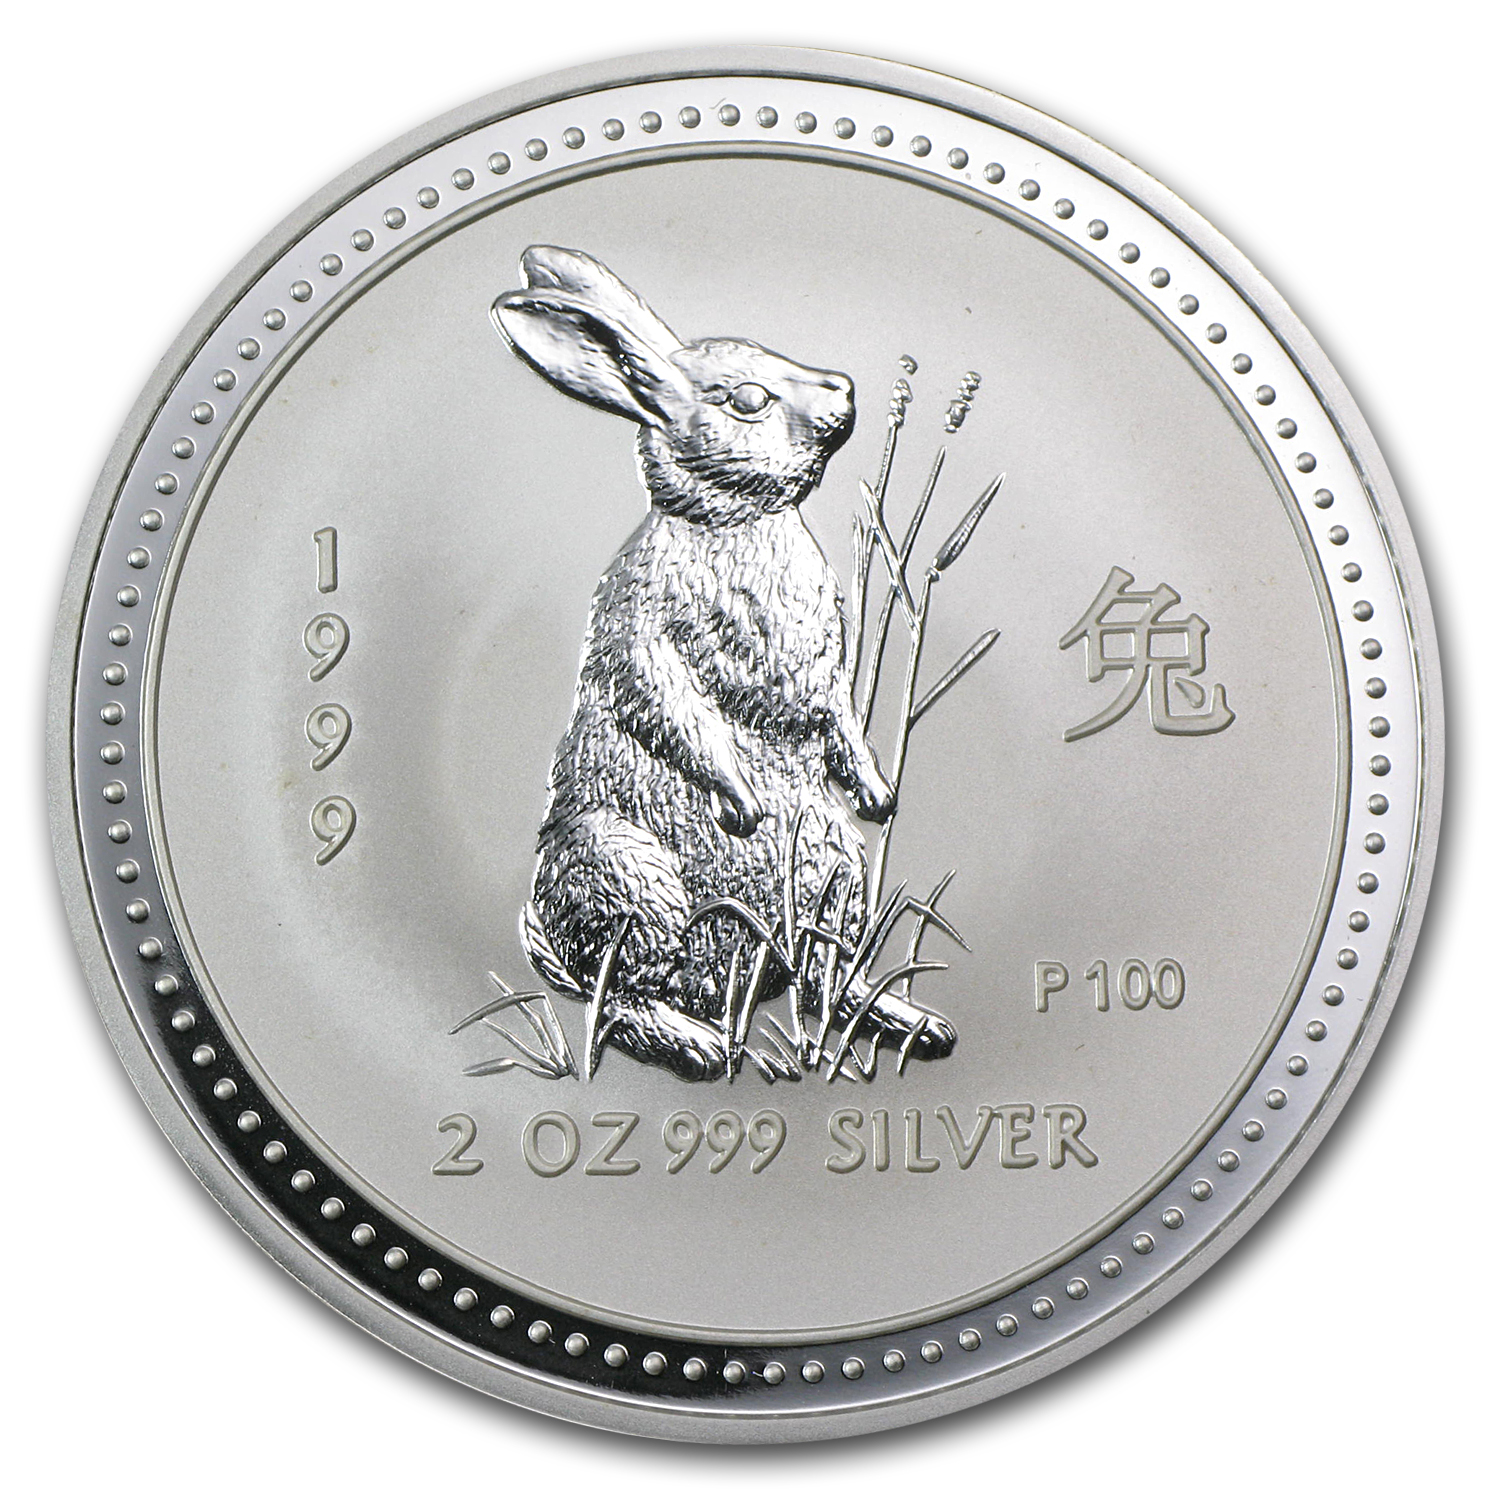 1999 2 oz Silver Lunar Year of the Rabbit SI (Light Abrasions)